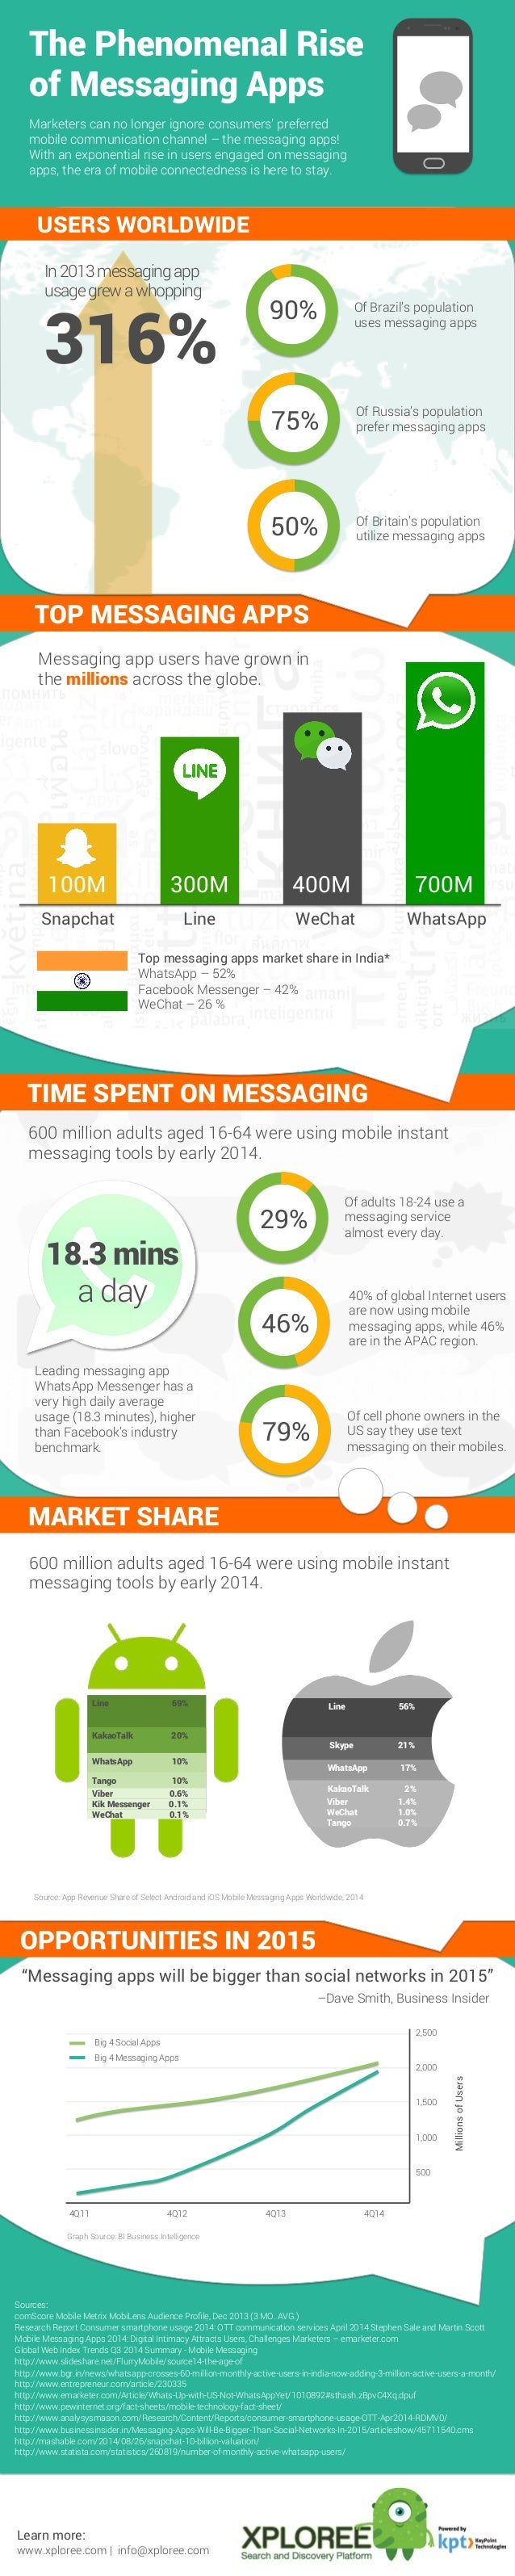 OPPORTUNITIES IN 2015 MARKET SHARE TIME SPENT ON MESSAGING The Phenomenal Rise of Messaging Apps Marketers can no longer i...